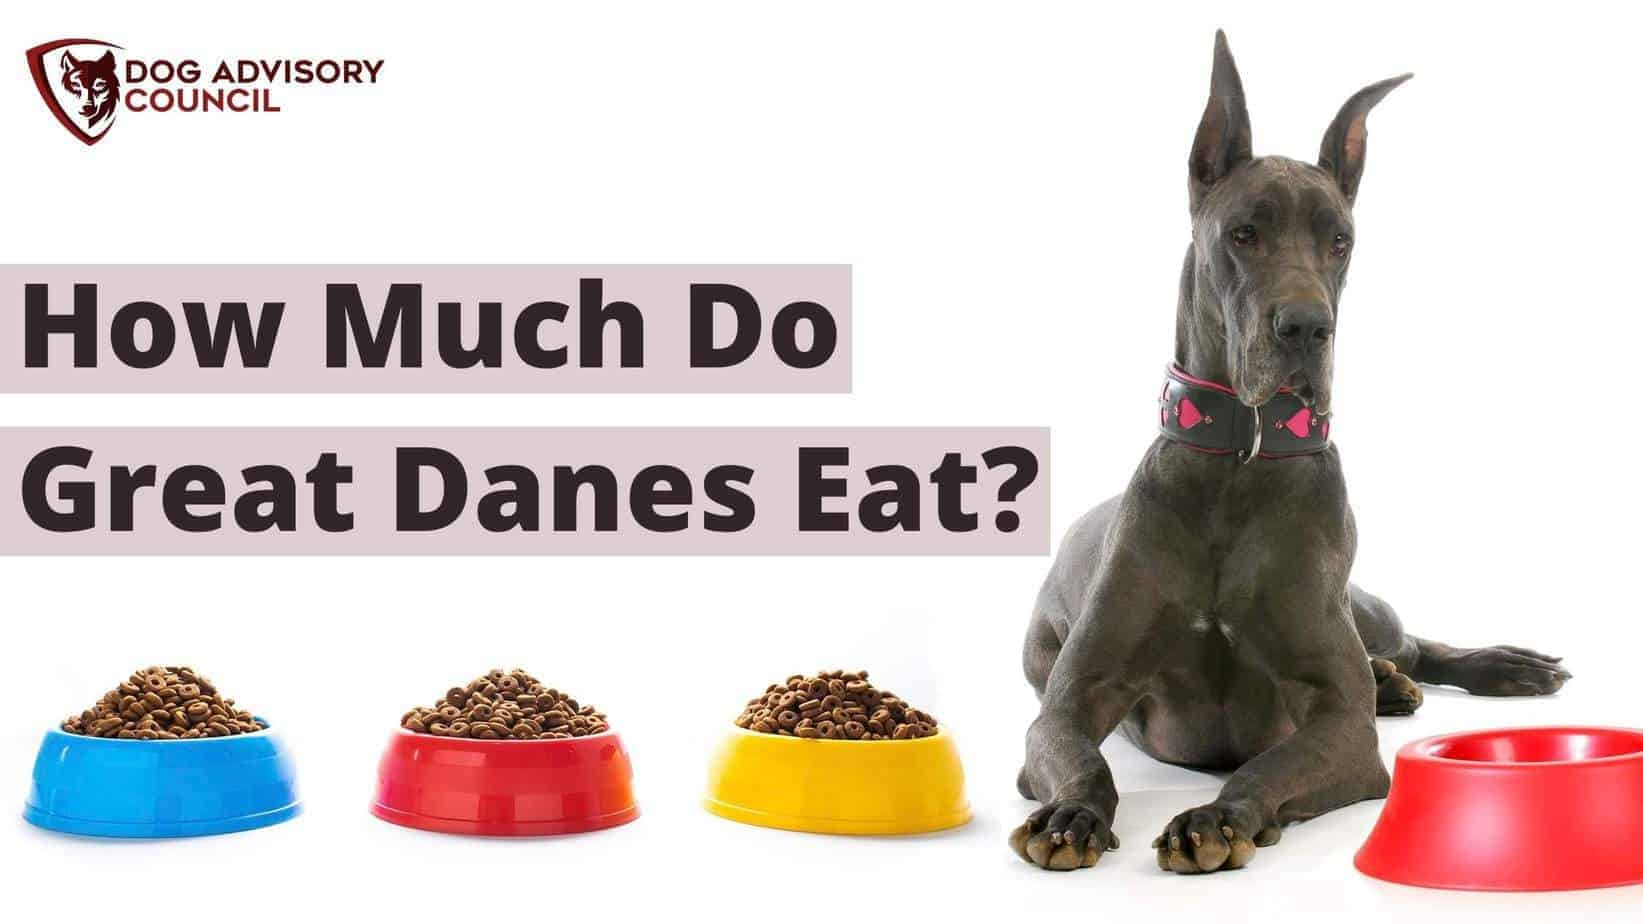 How much do Great Danes eat